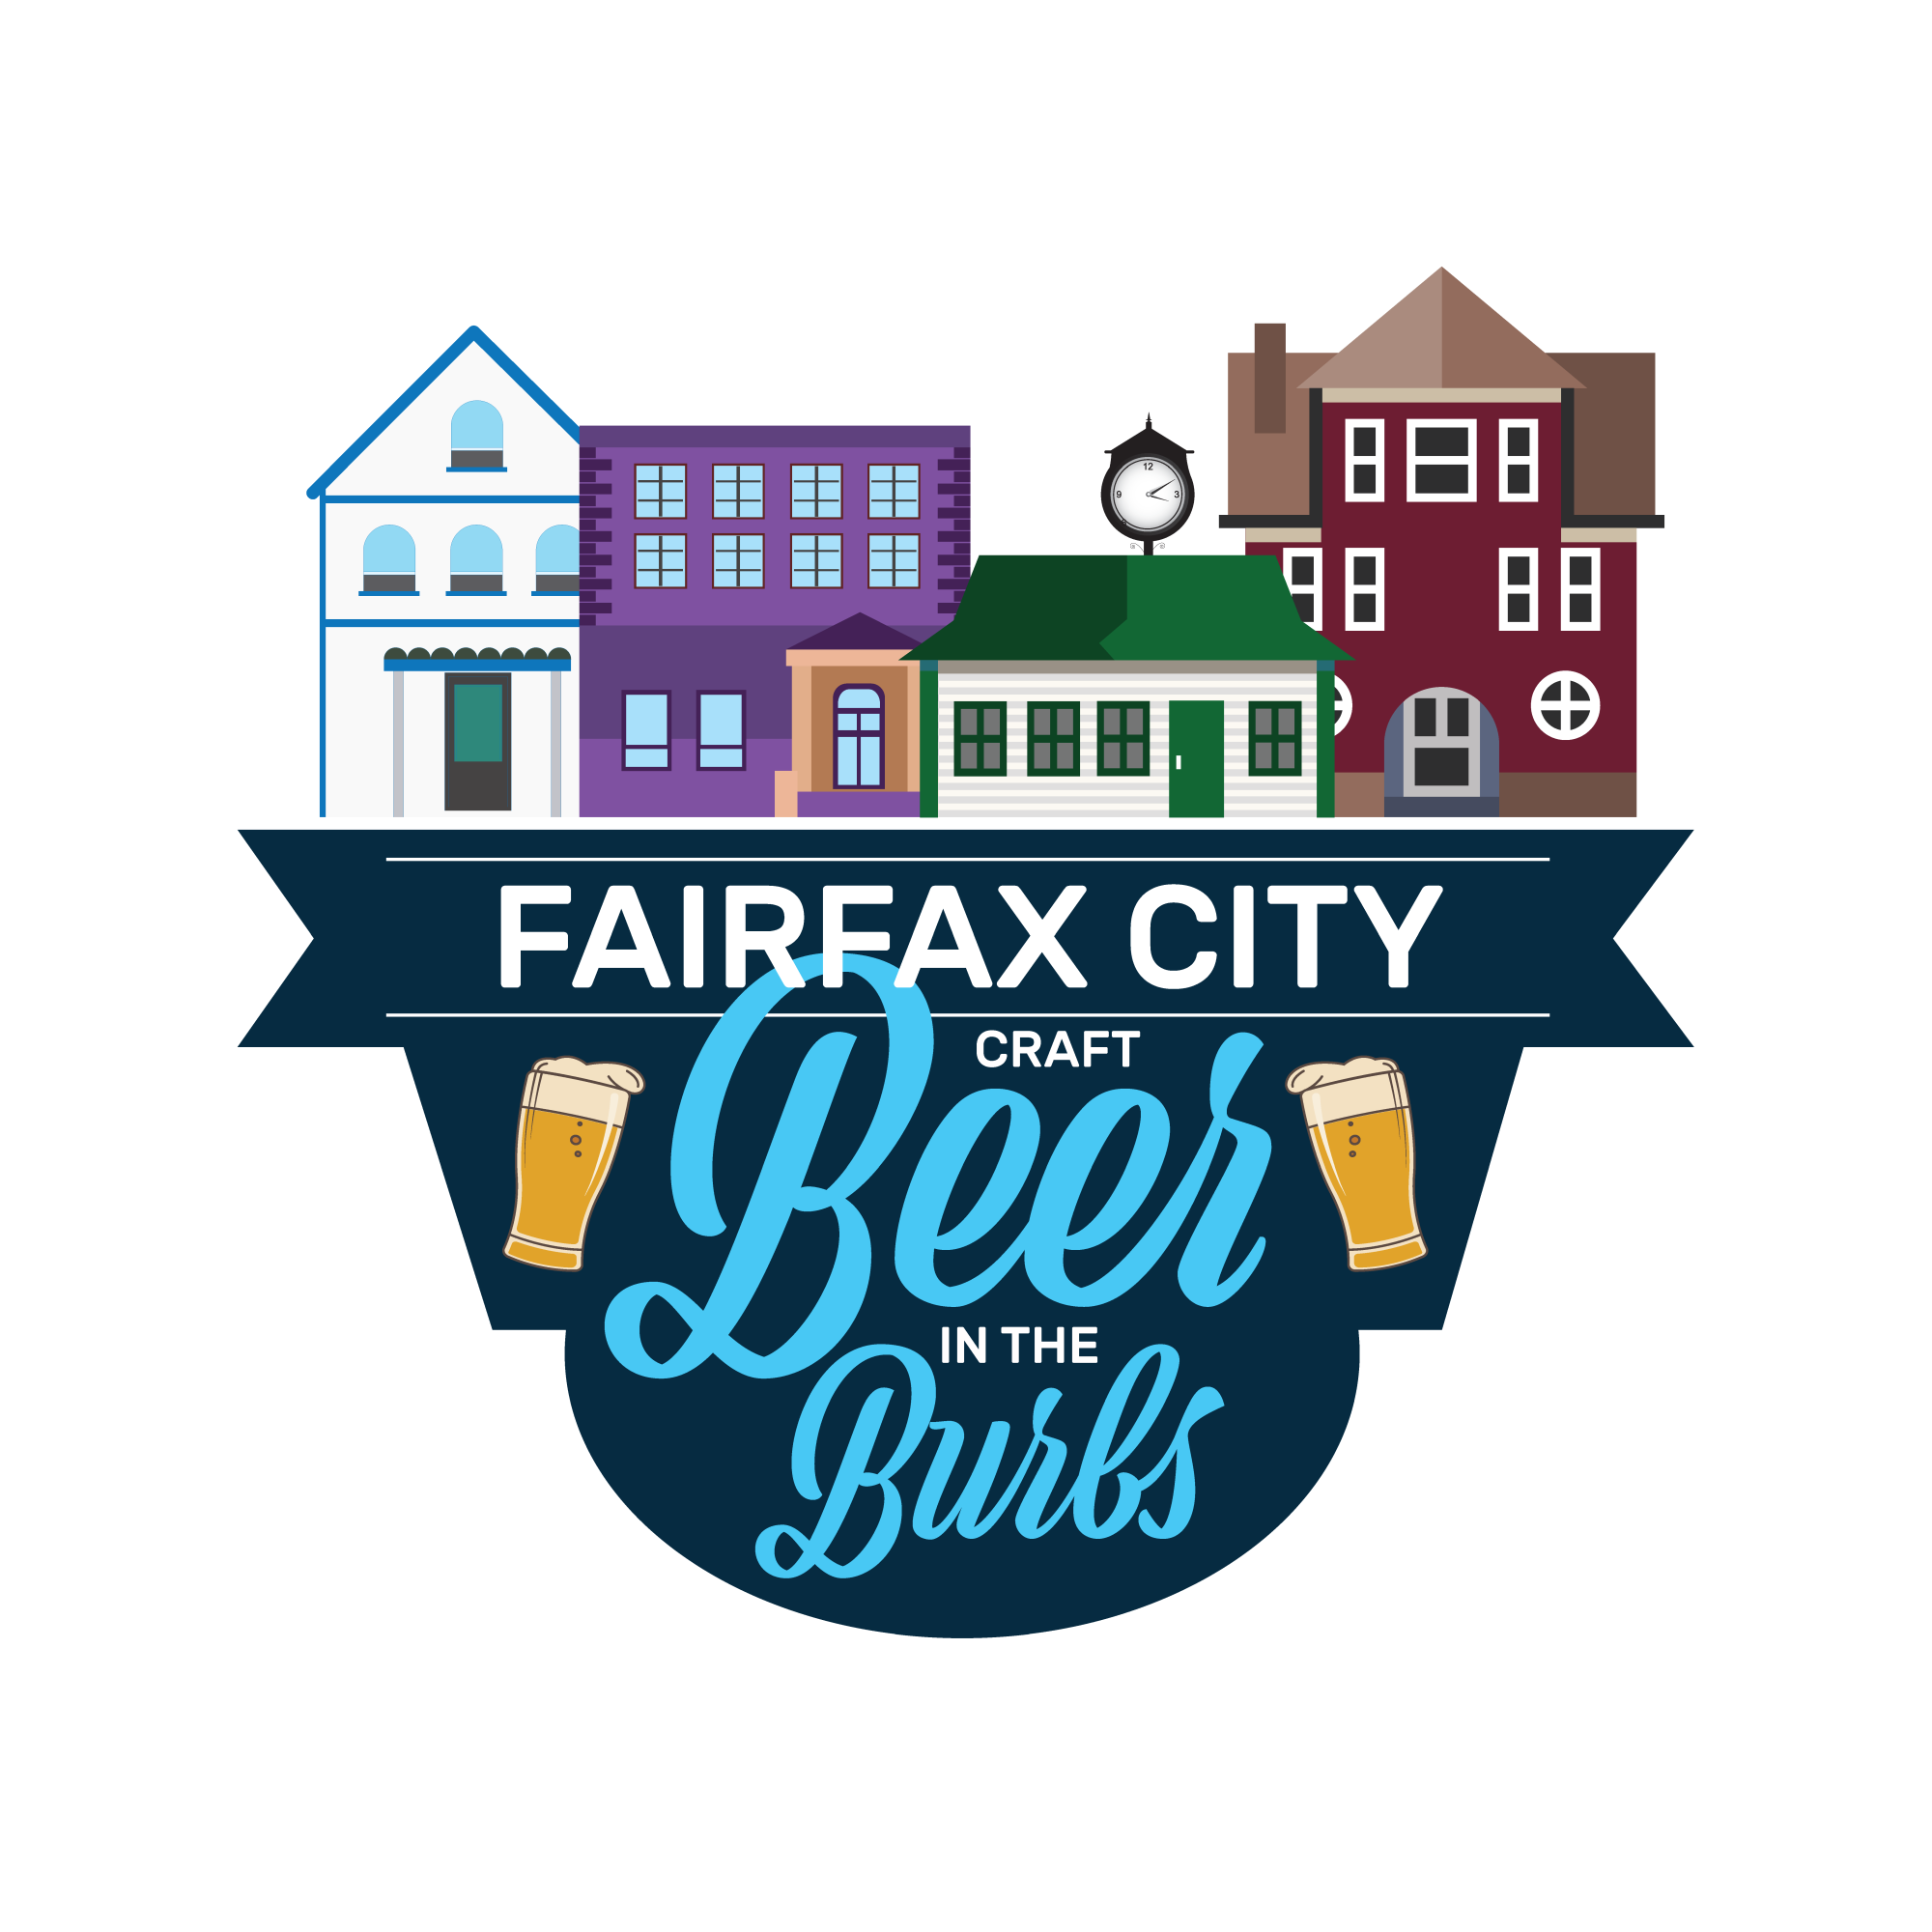 beer in the burbs logo